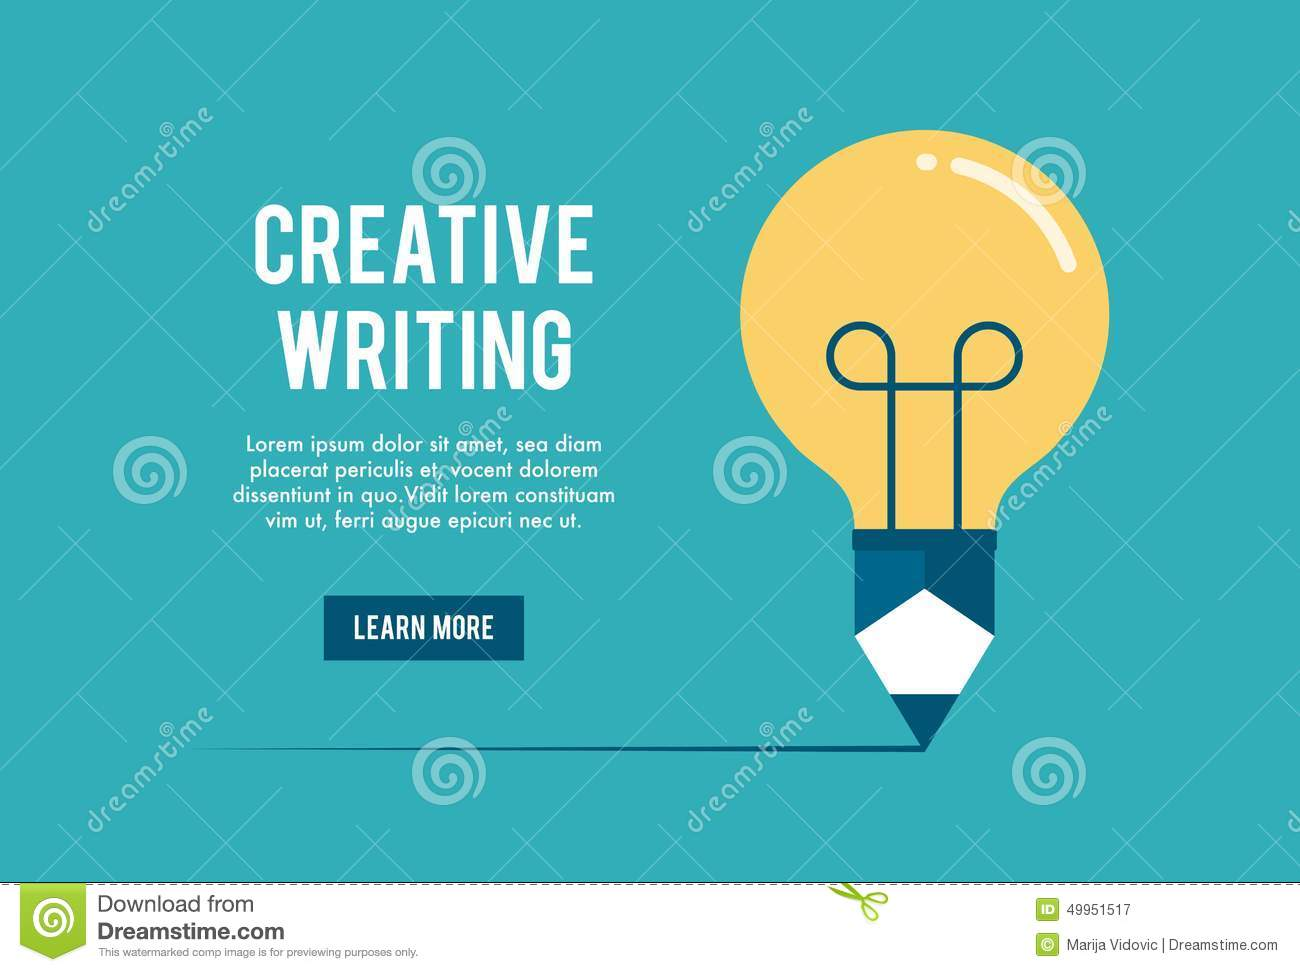 creative writing for dummies dgereport84 web fc2 com creative writing for dummies